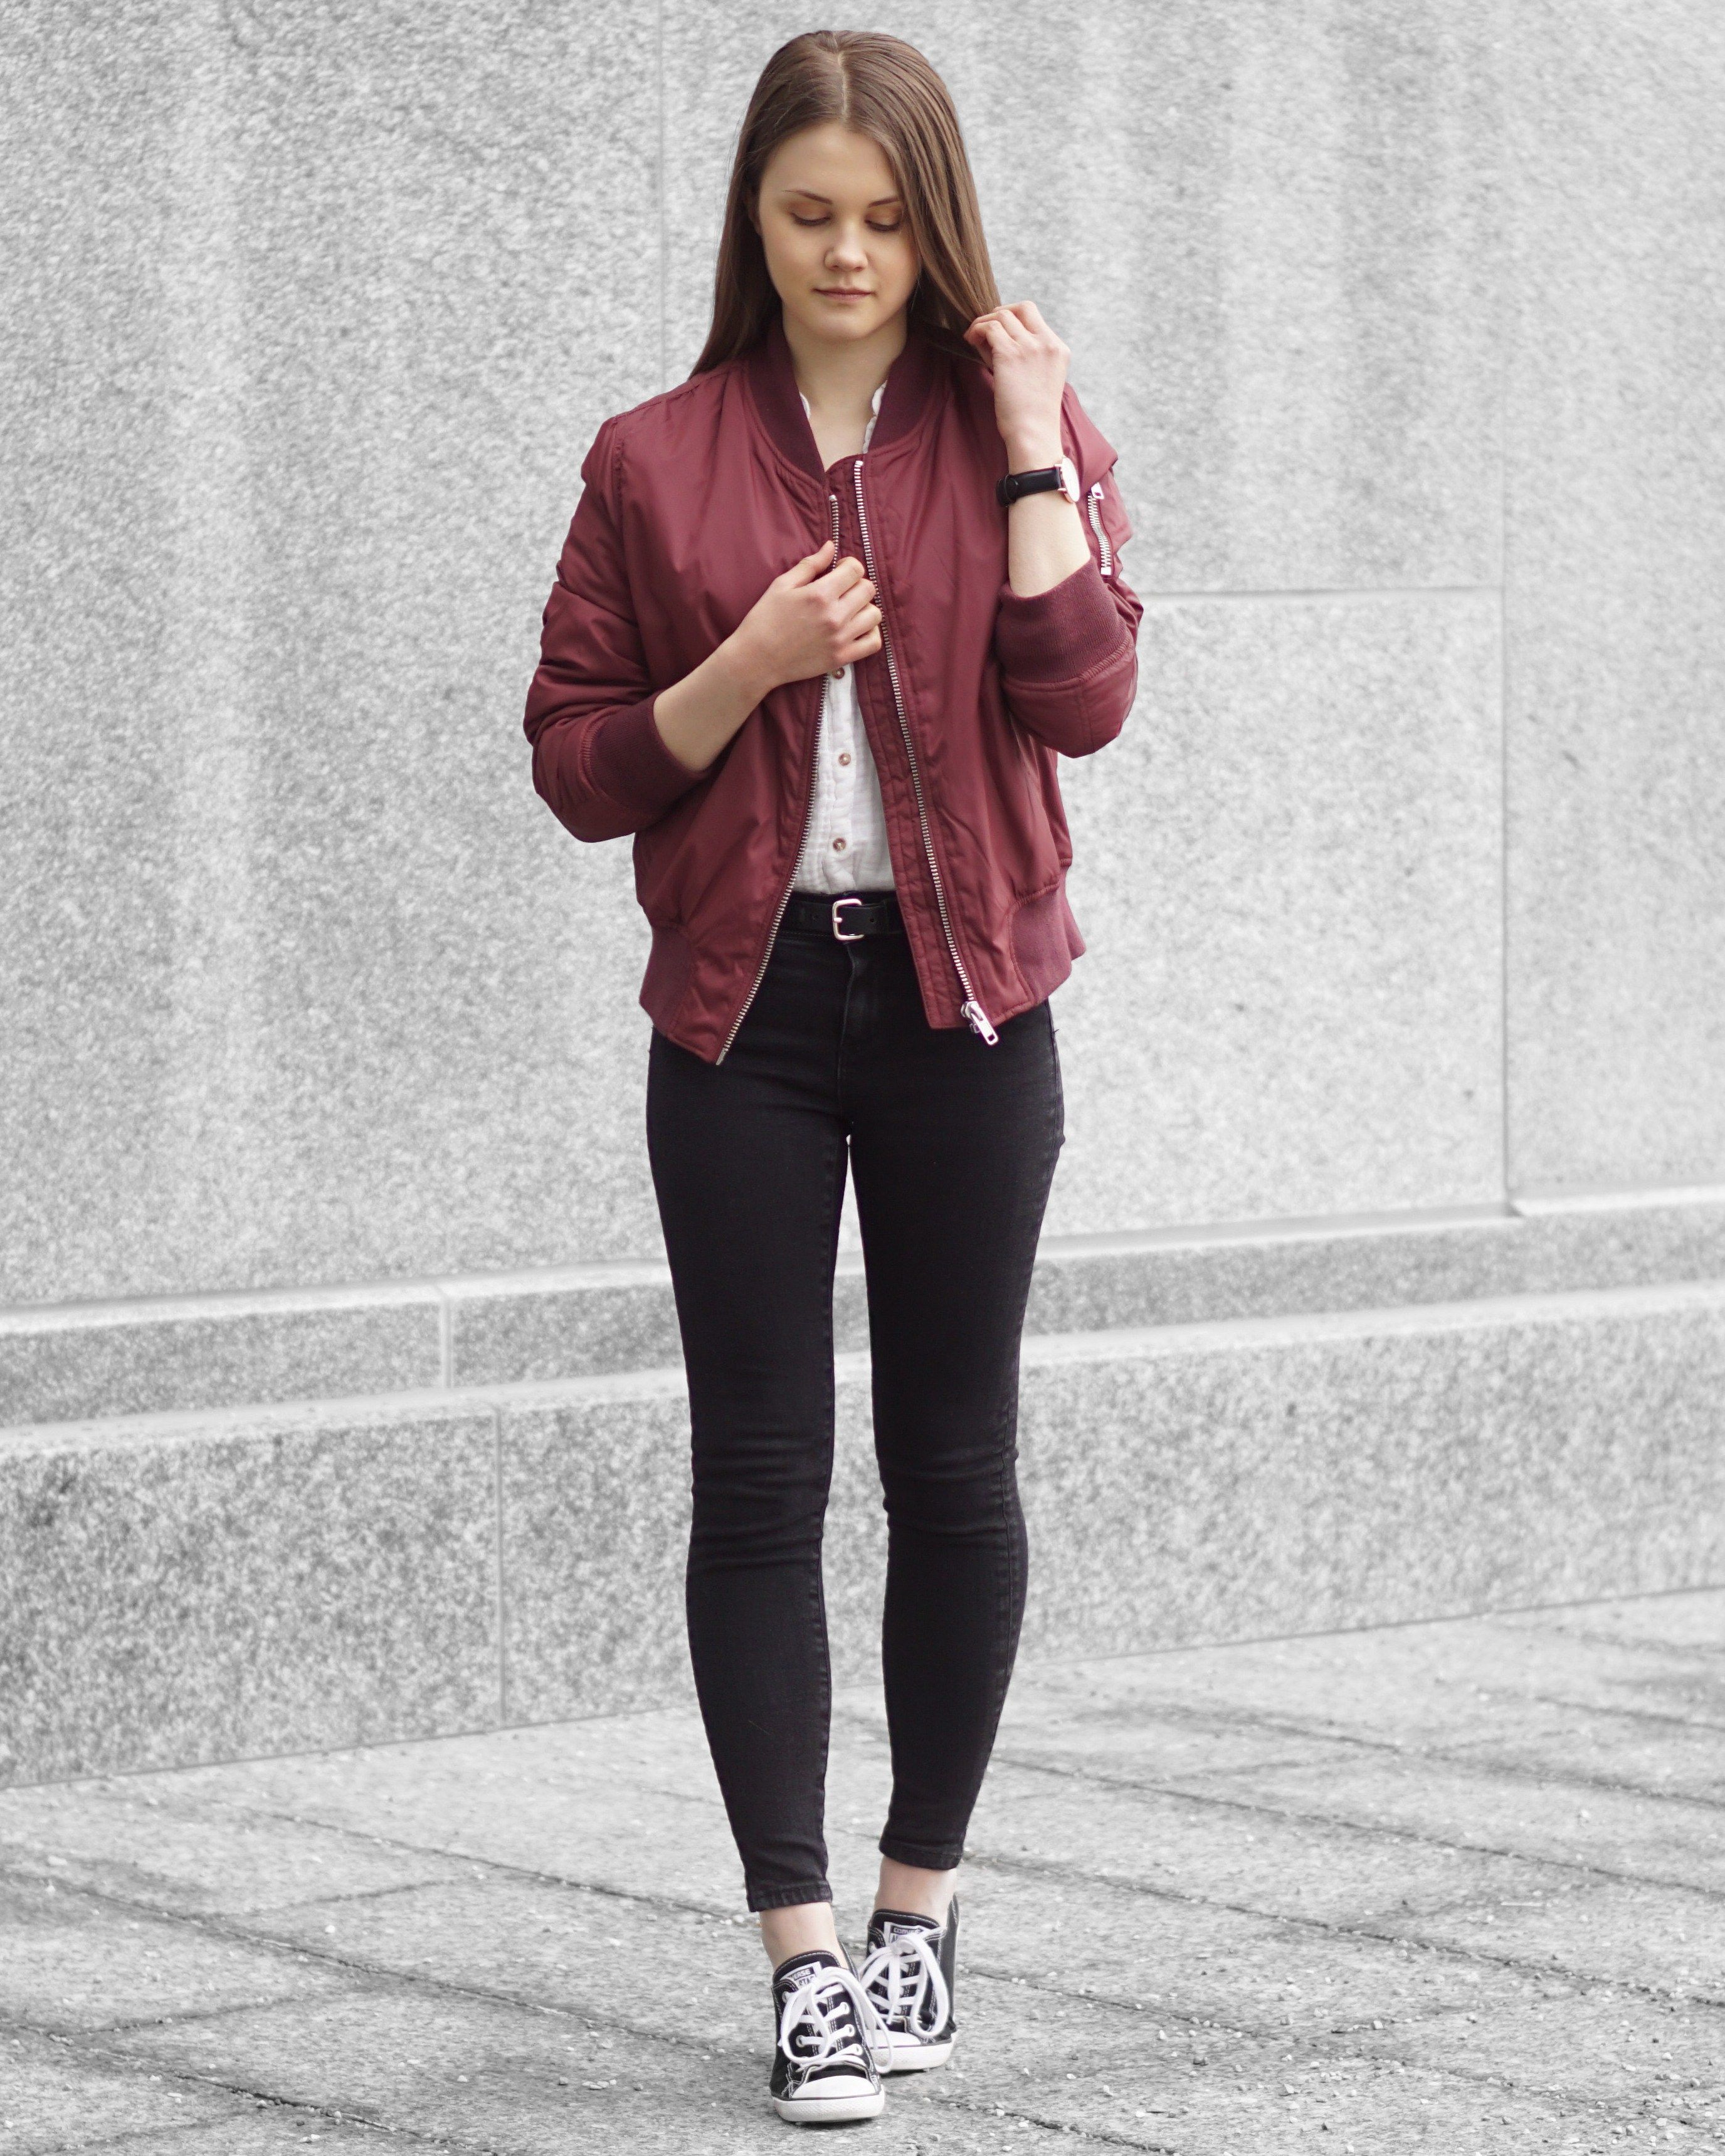 newest 97a09 0572a A Little Detail - Rut   Circle Burgundy Bomber Jacket    White Button Up     Black Skinny Jeans    Converse Sneakers     outfit  springfashion   fallfashion ...